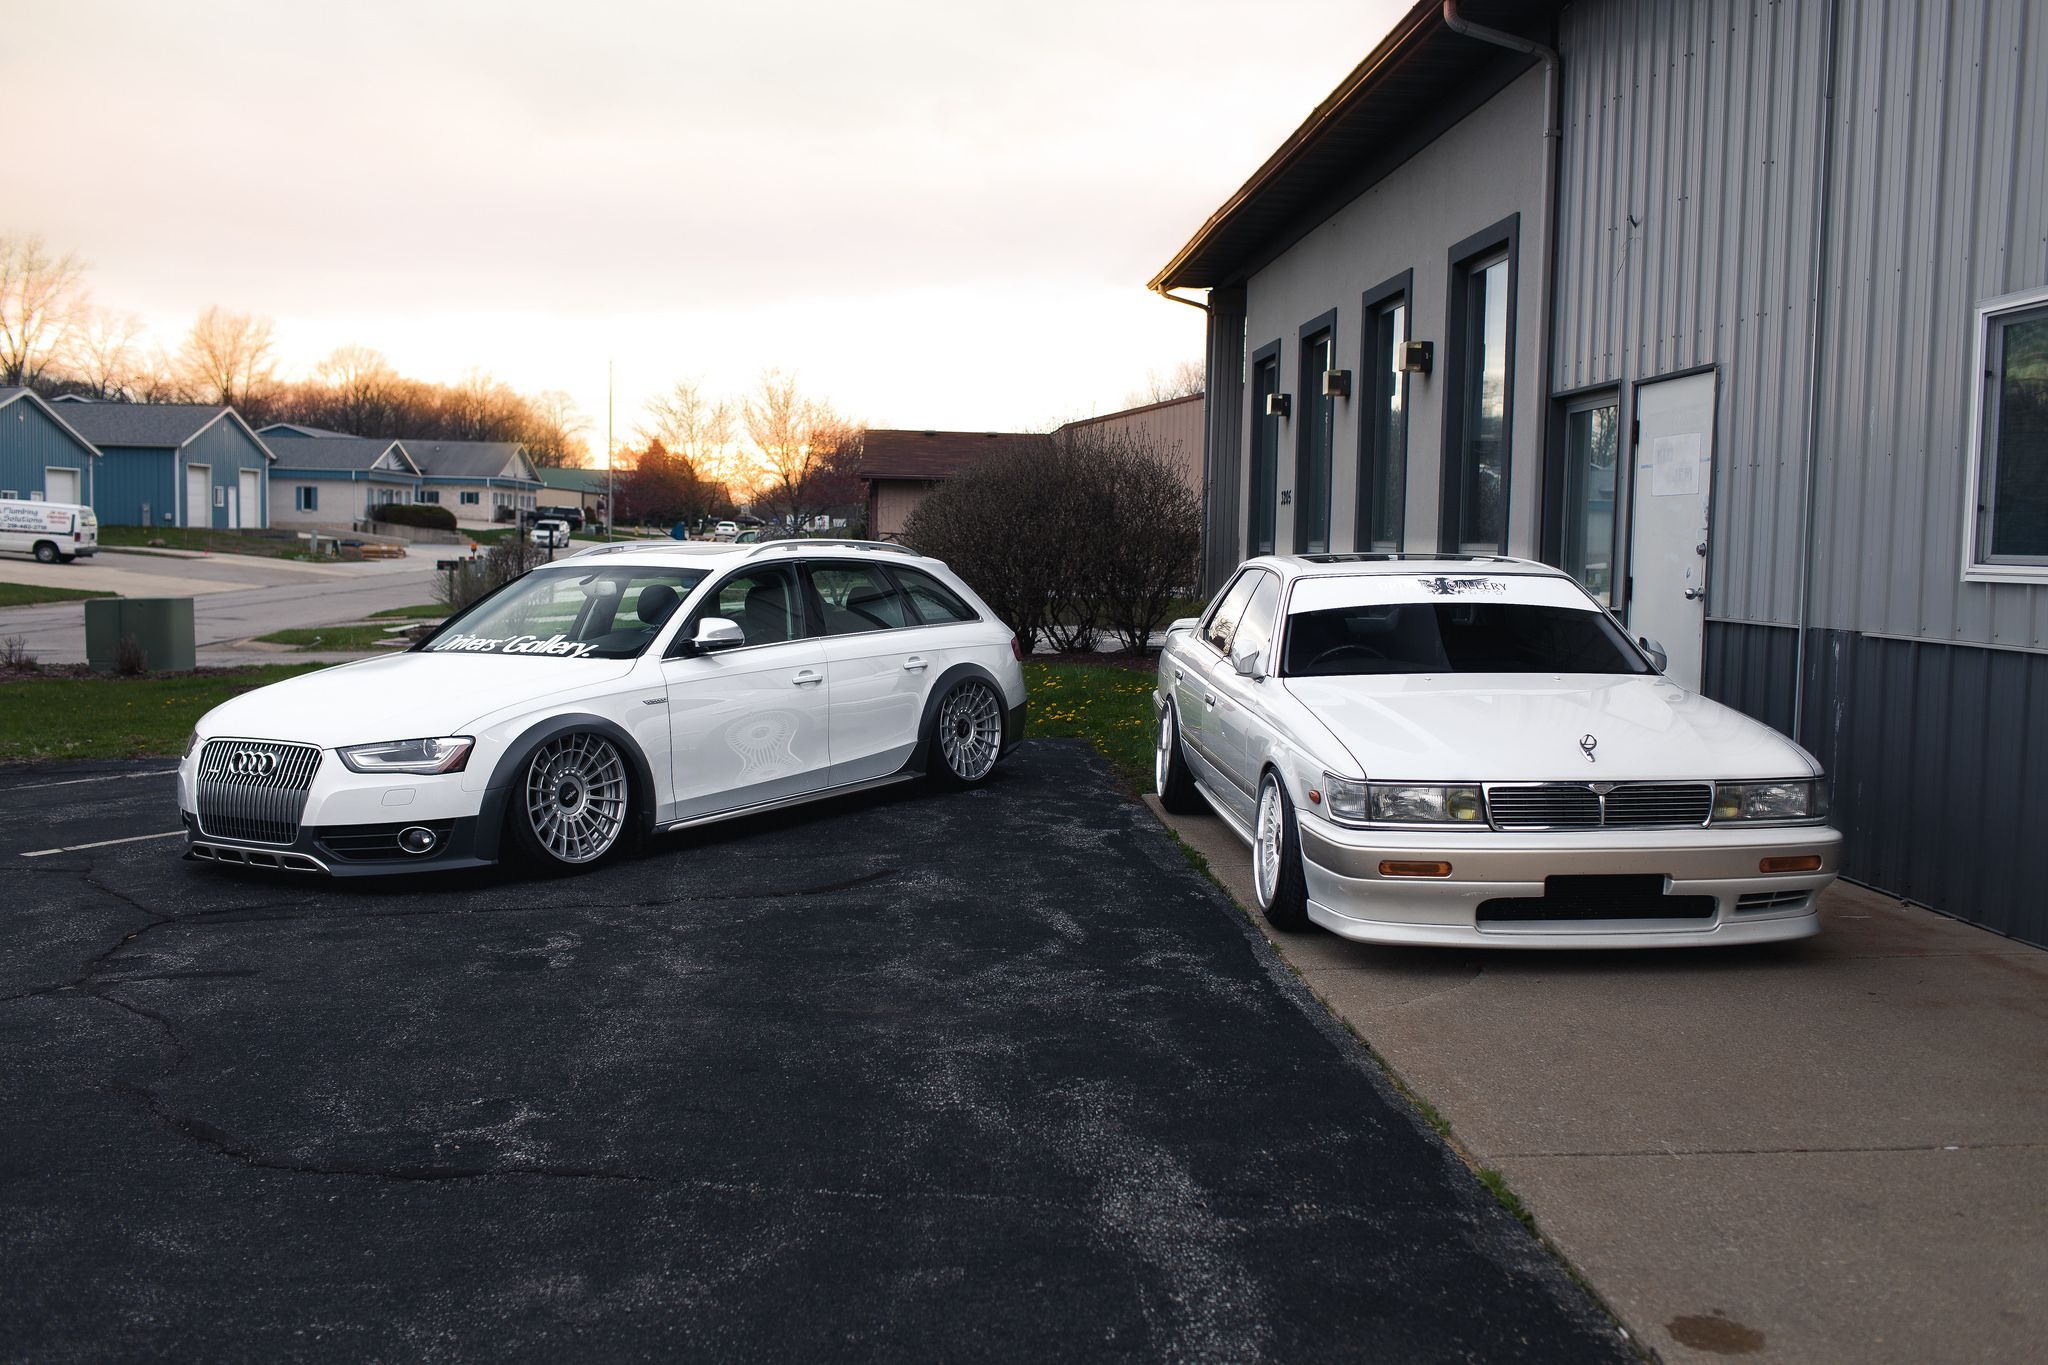 Nissan Laurel and tuned Audi allroad